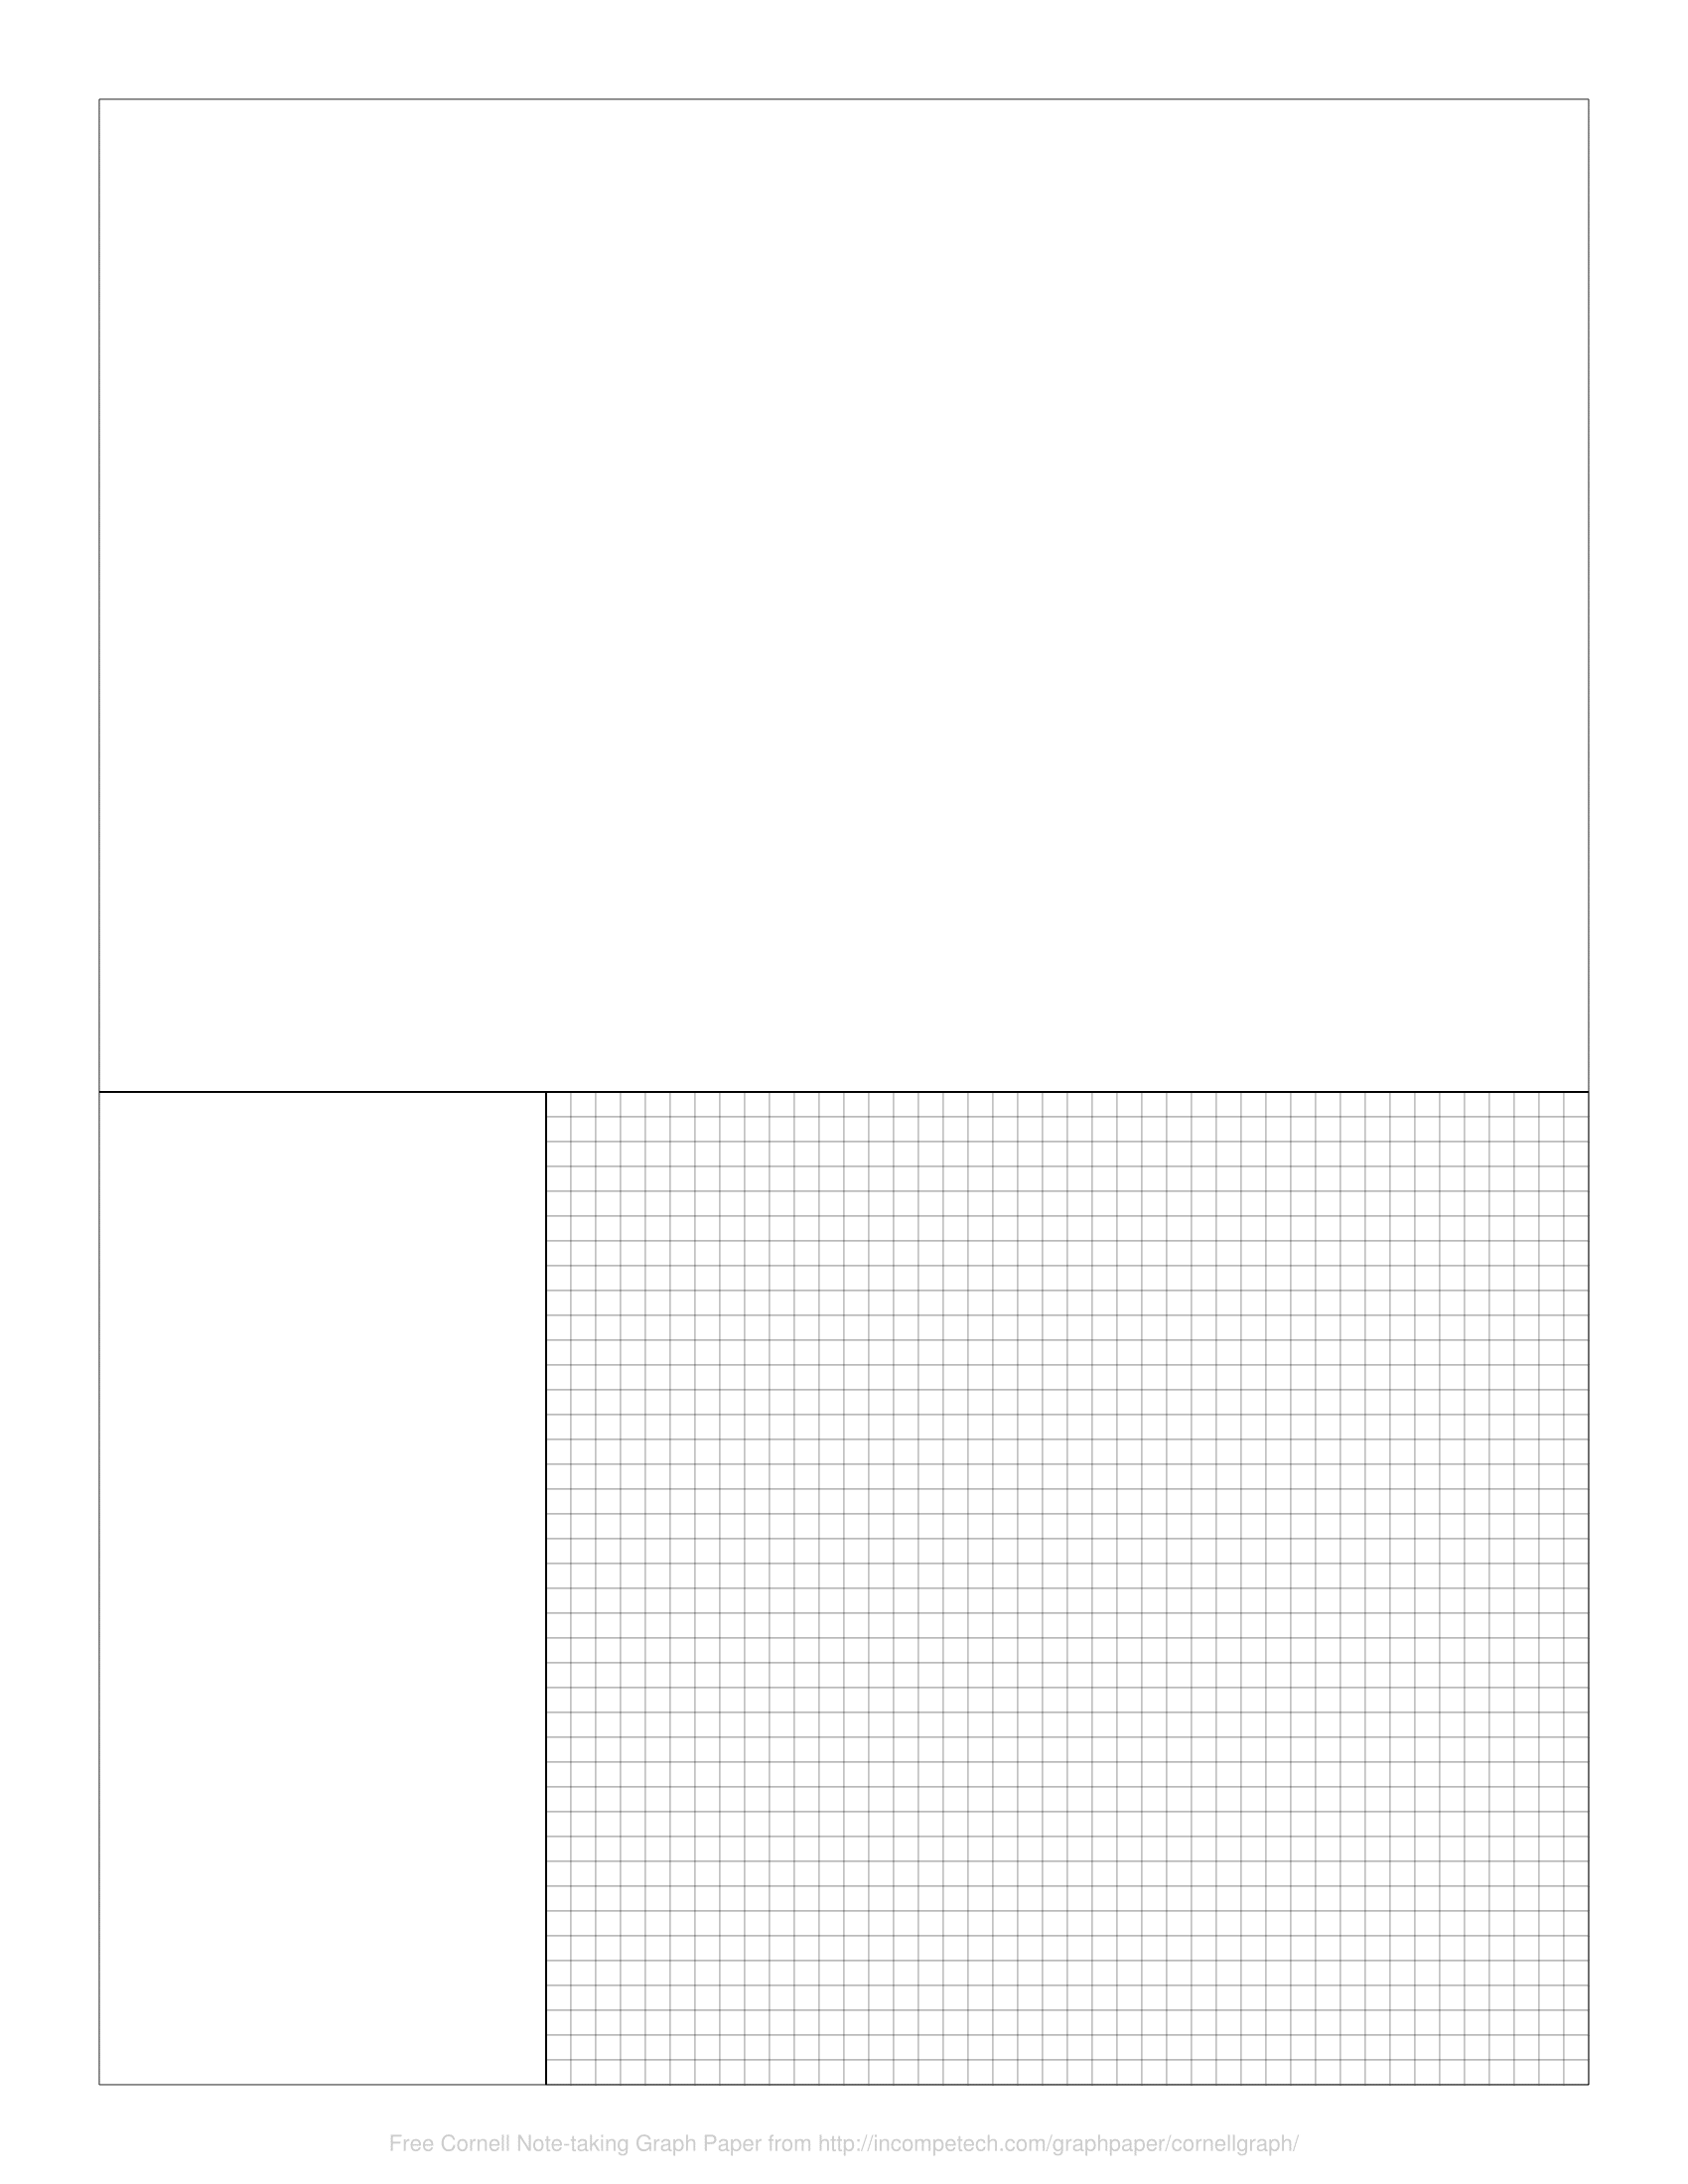 free online graph paper cornell note taking graph